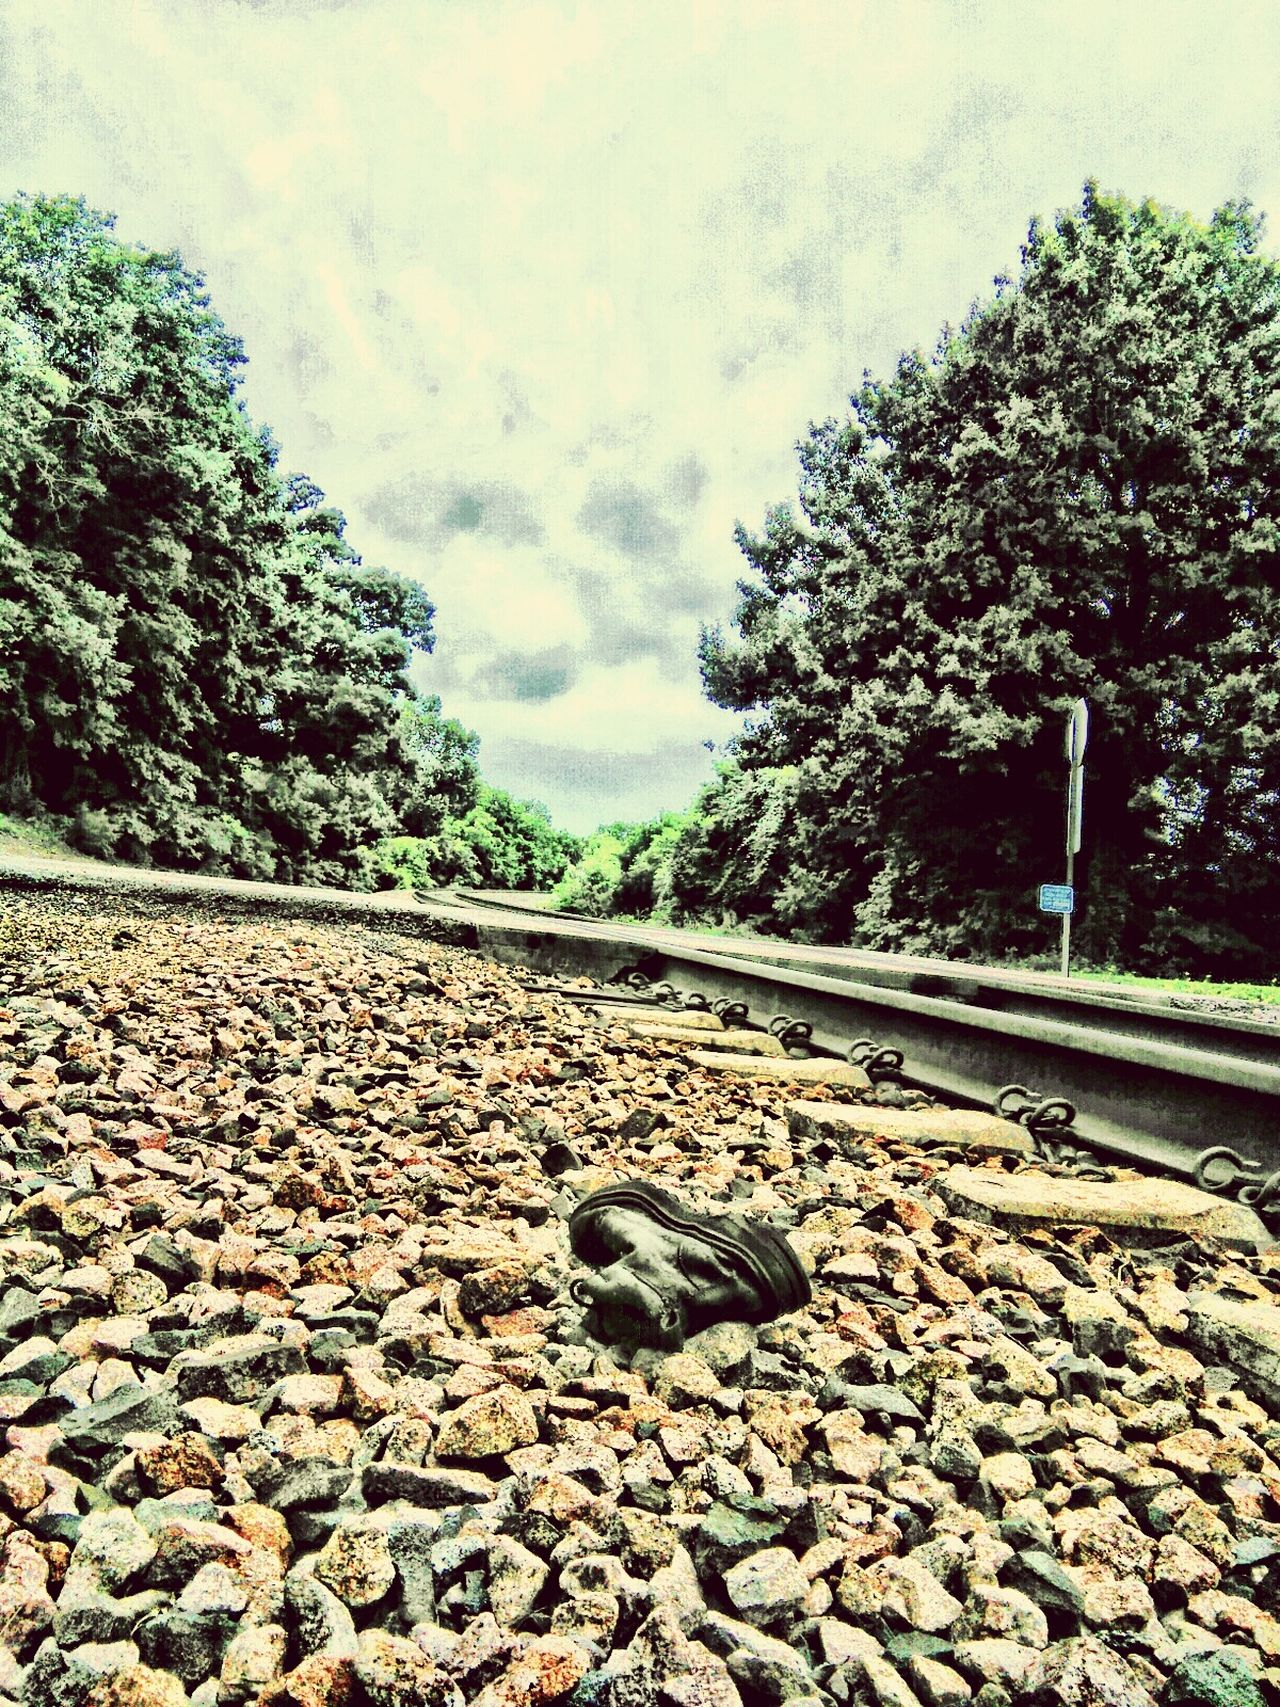 Different Perspective Version 2 Hdr_Collection Hdr Photography EyeEm USA  Fresh On Eyeem  Shoe Fetish Nature Landscape Train Tracks Through The Country Train Tracks Landscapes New On Eyeem EyeEm Gallery HDR EyeEm Nature Lover Showcase July New On Market Hdr Collections TRENDING  Eyeem Market Eyeem Trending Popular EyeEm Week Fine Art